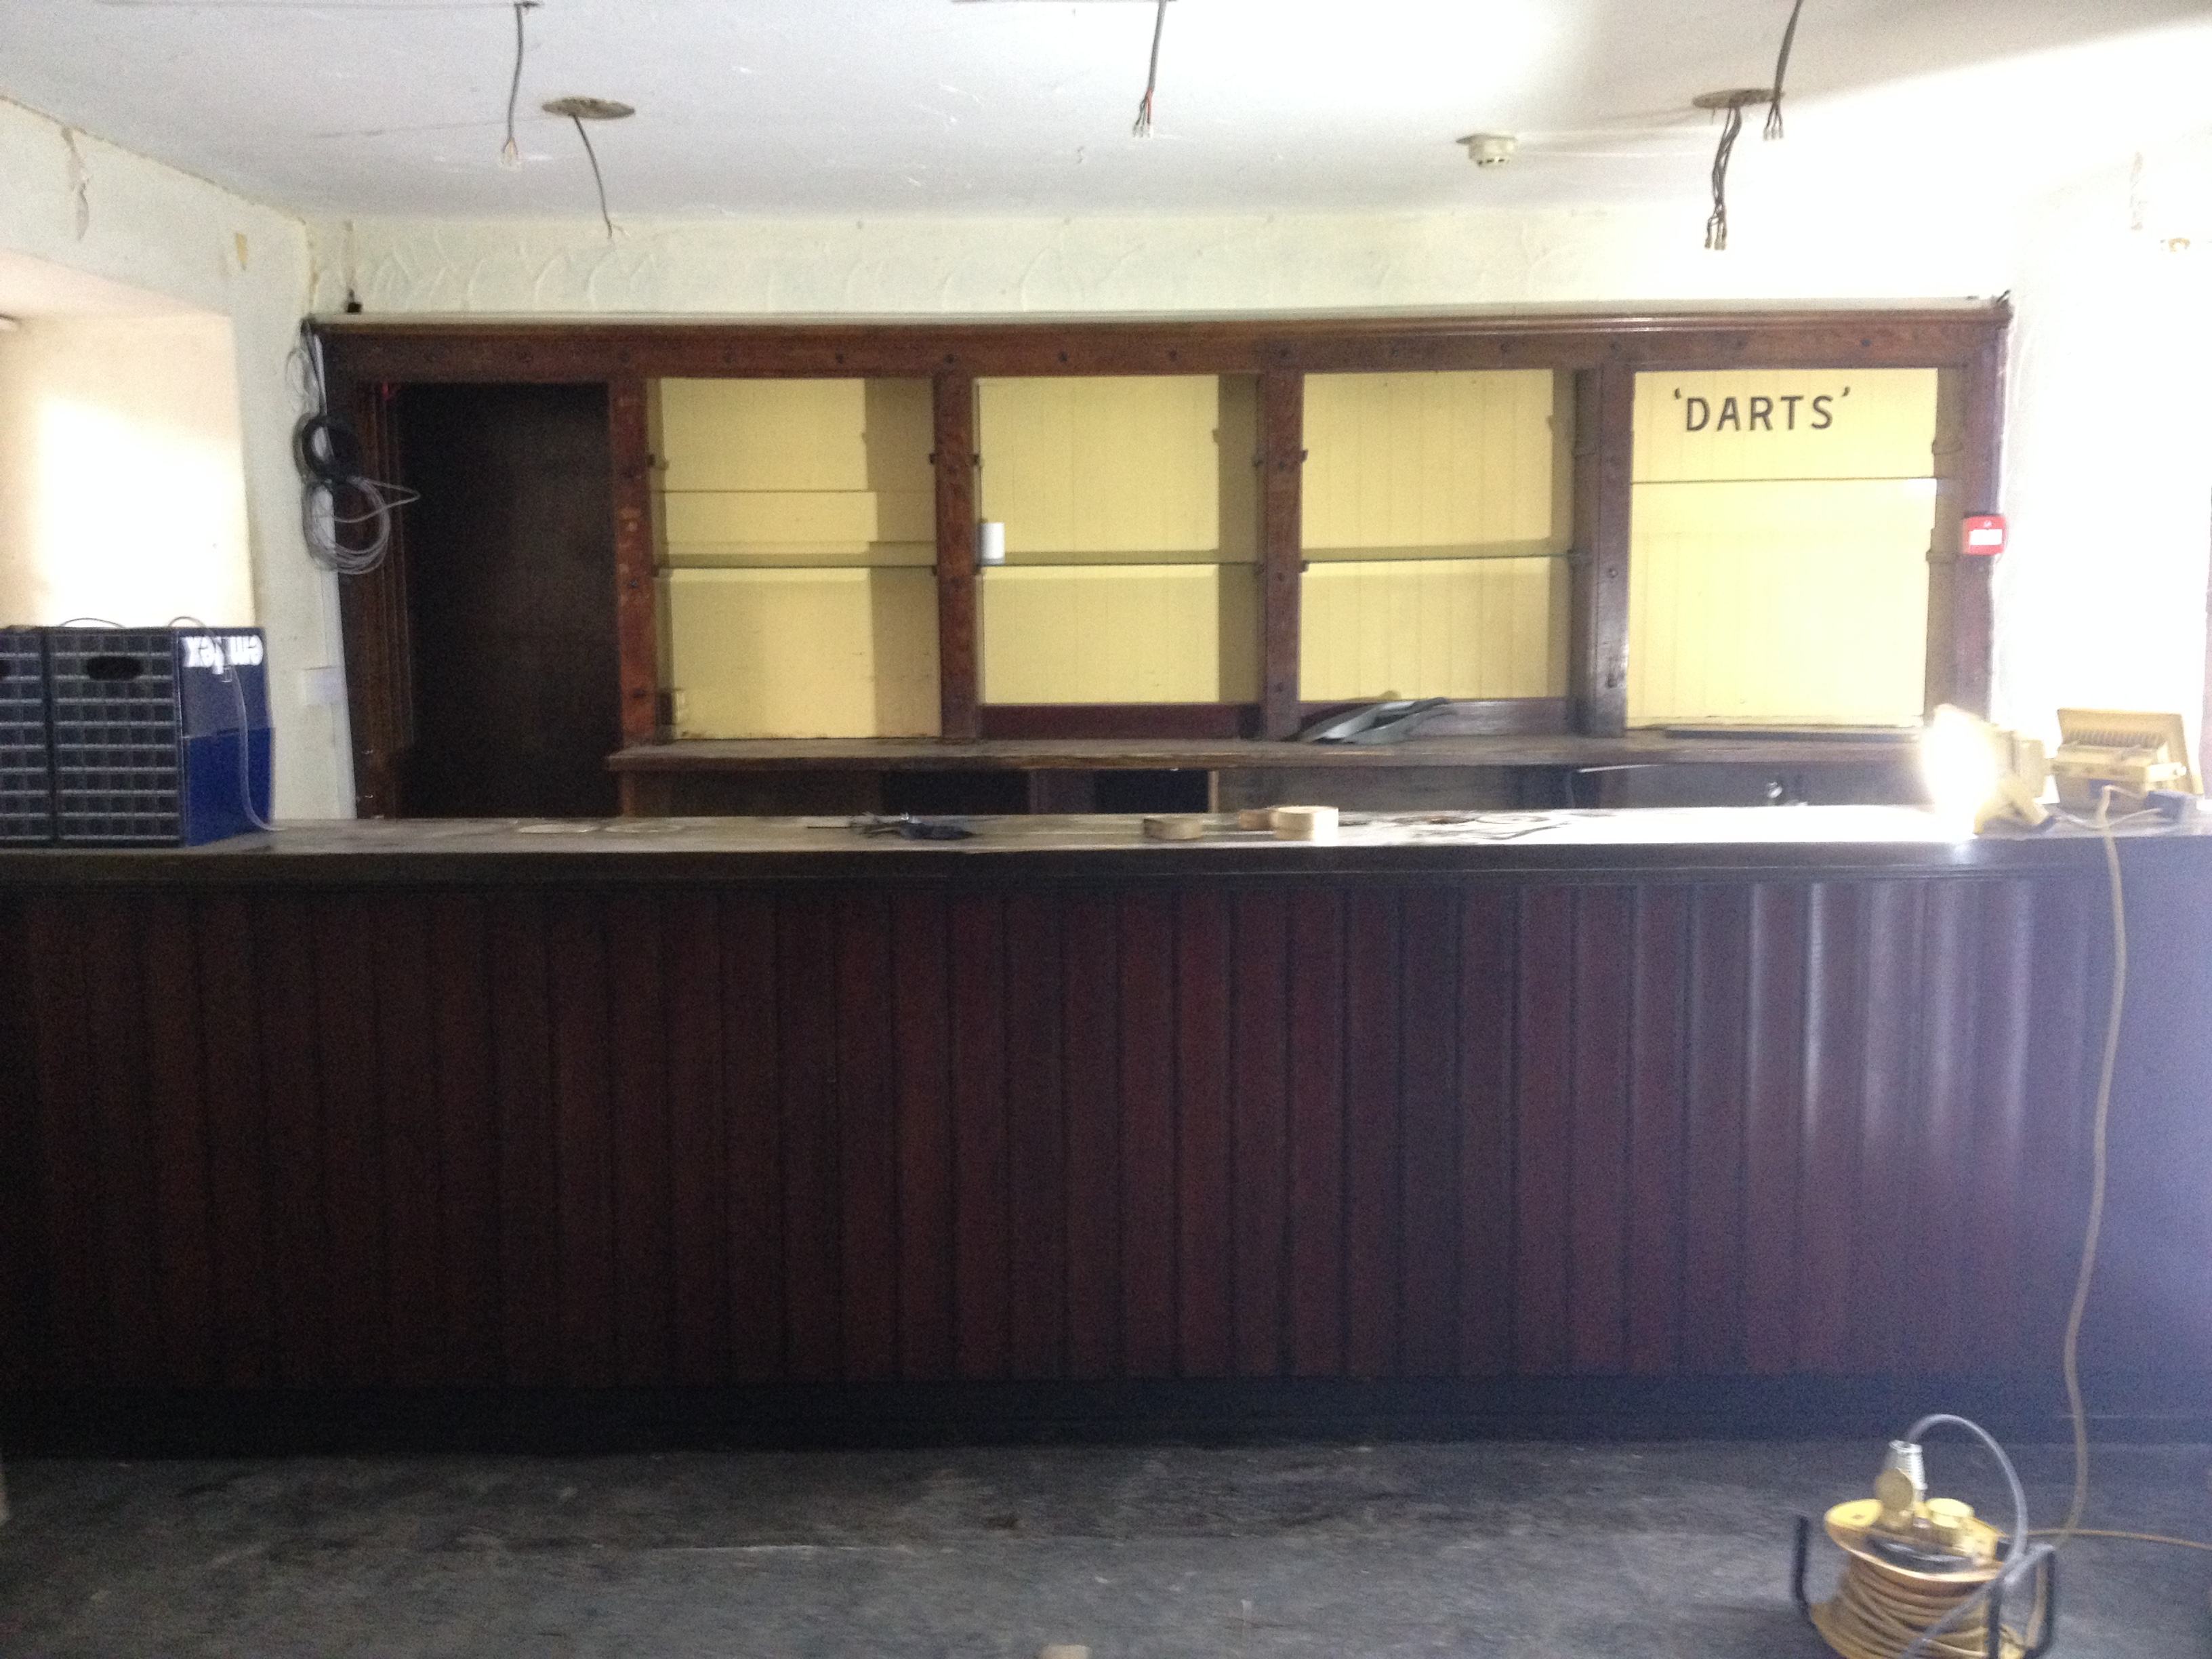 The bar is stripped